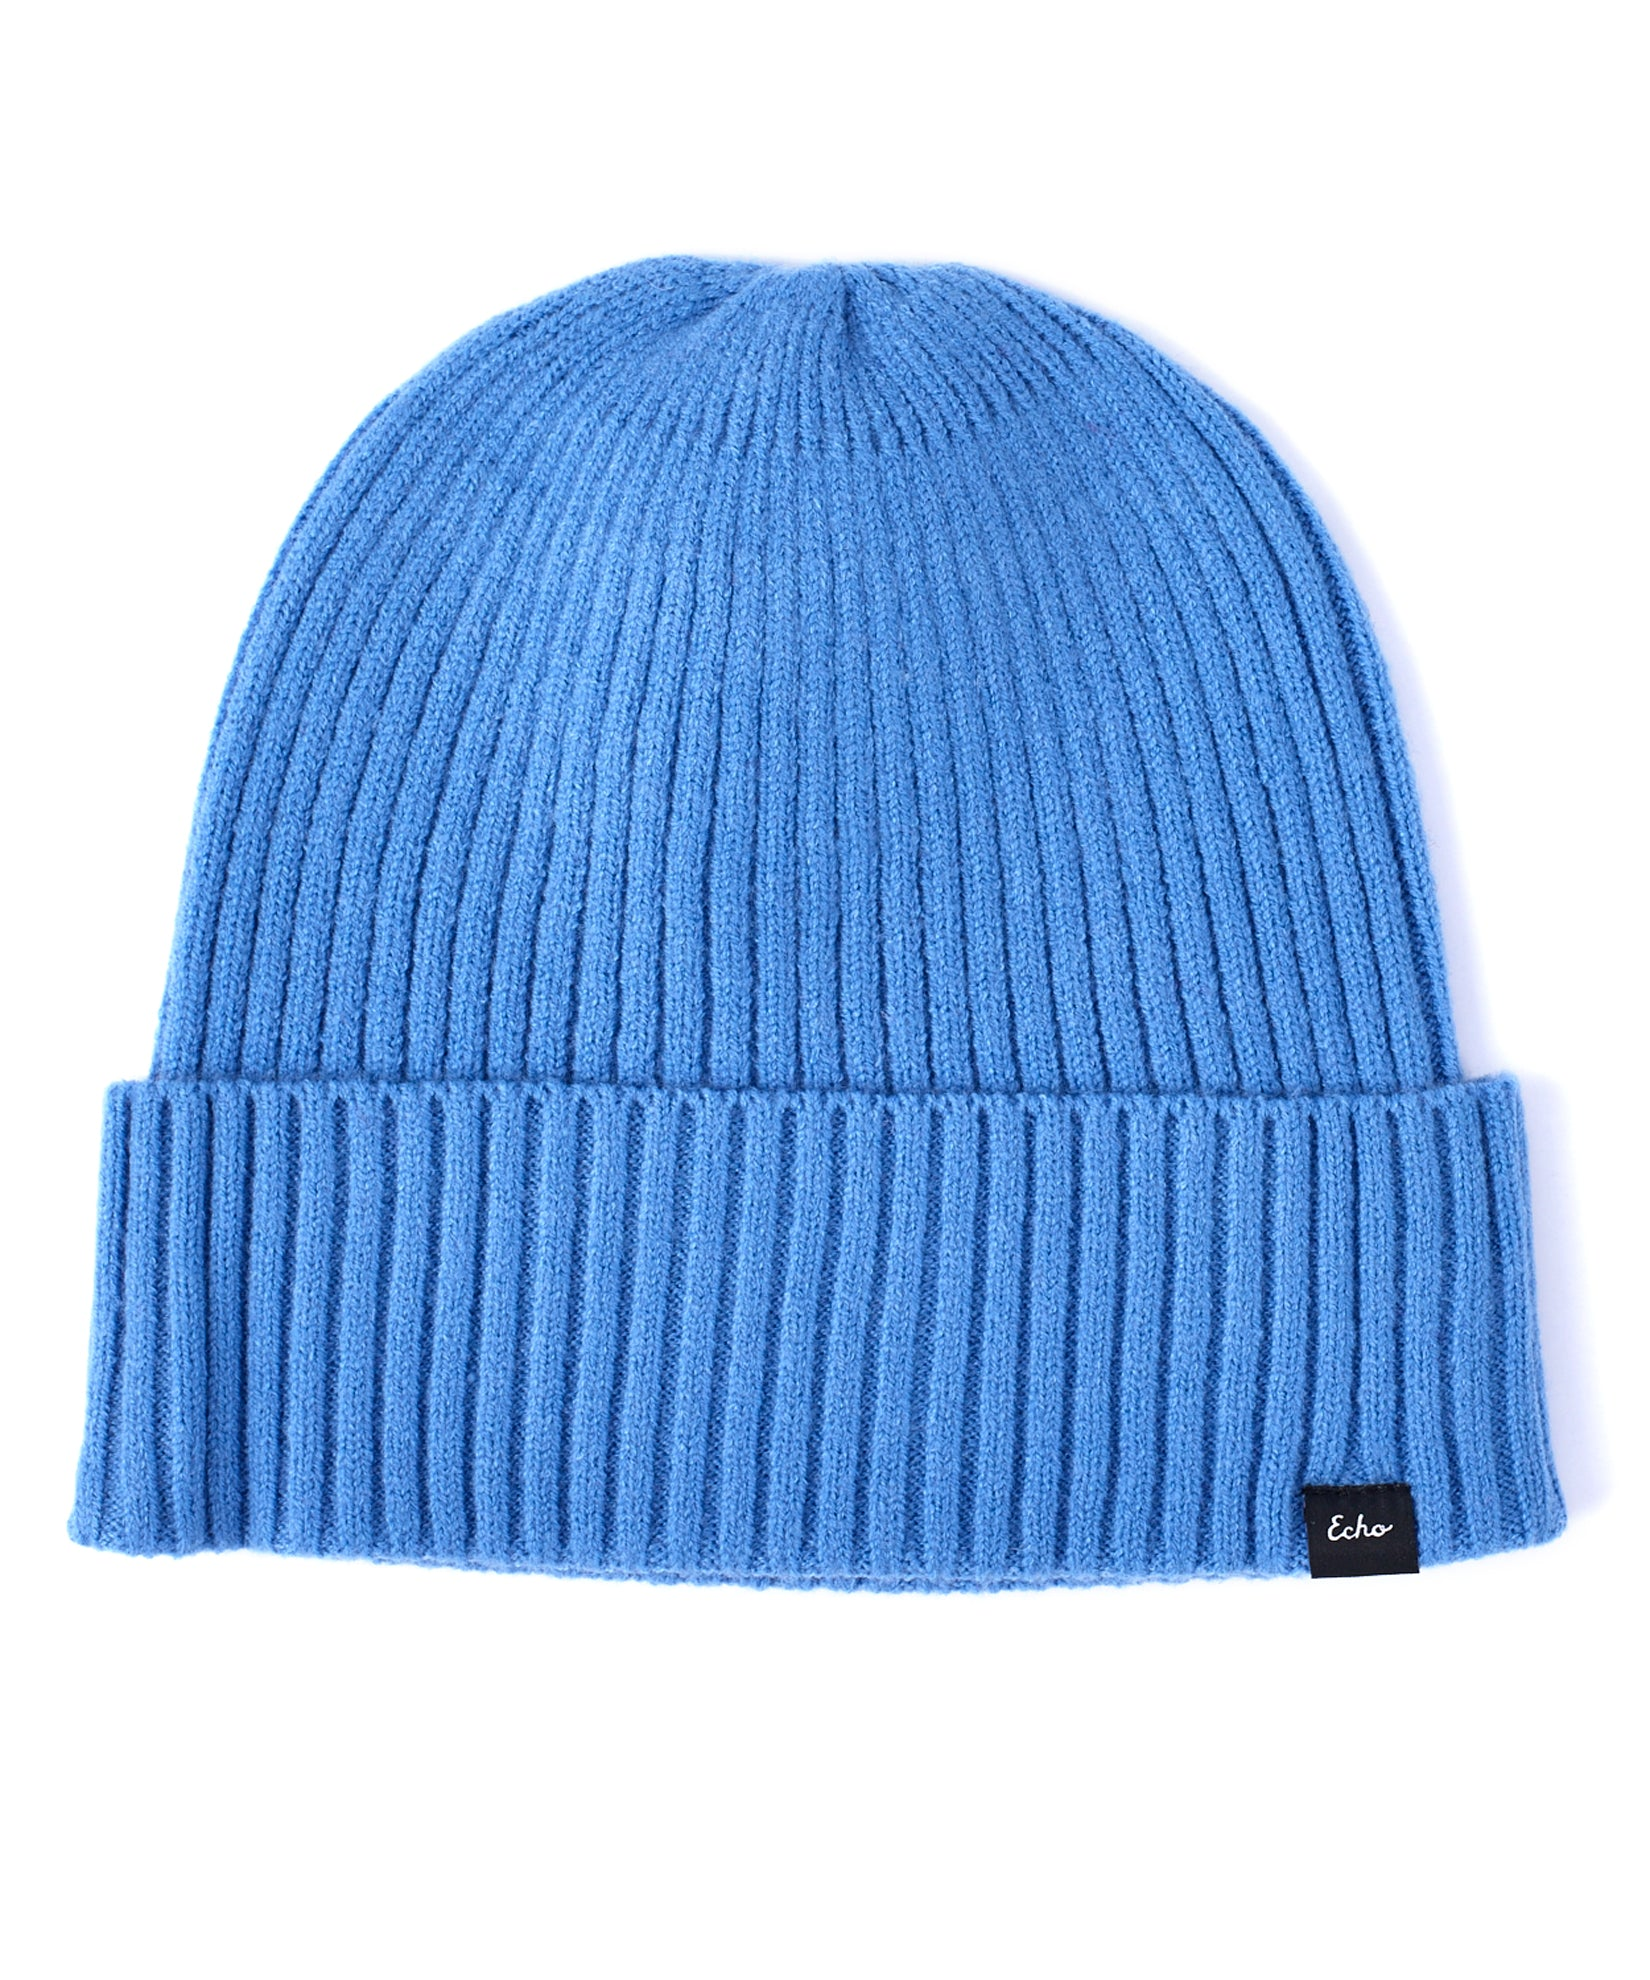 Goa Blue - Active Stretch Ribbed Cuff Beanie